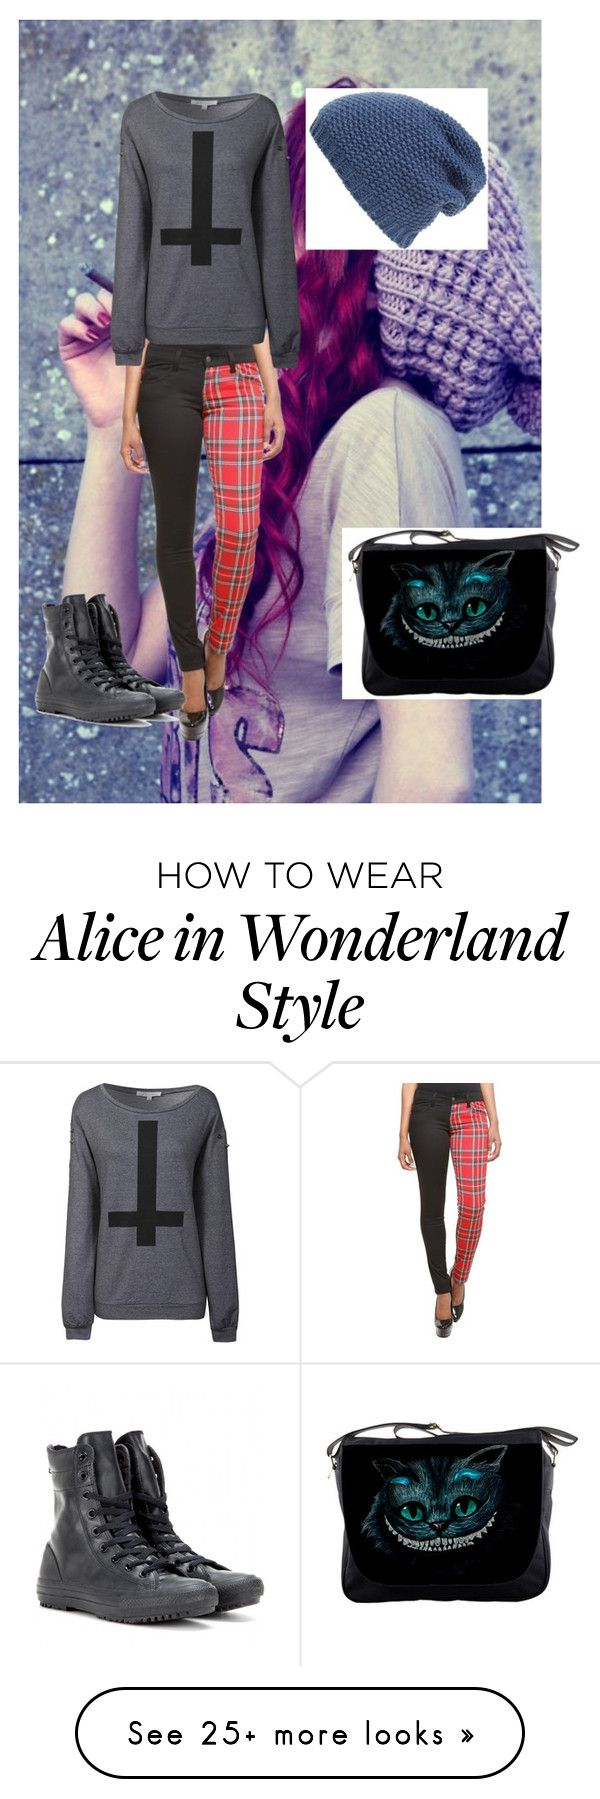 """Untitled #308"" by emogirlforlife on Polyvore featuring Glamorous, Phase 3 and Converse"